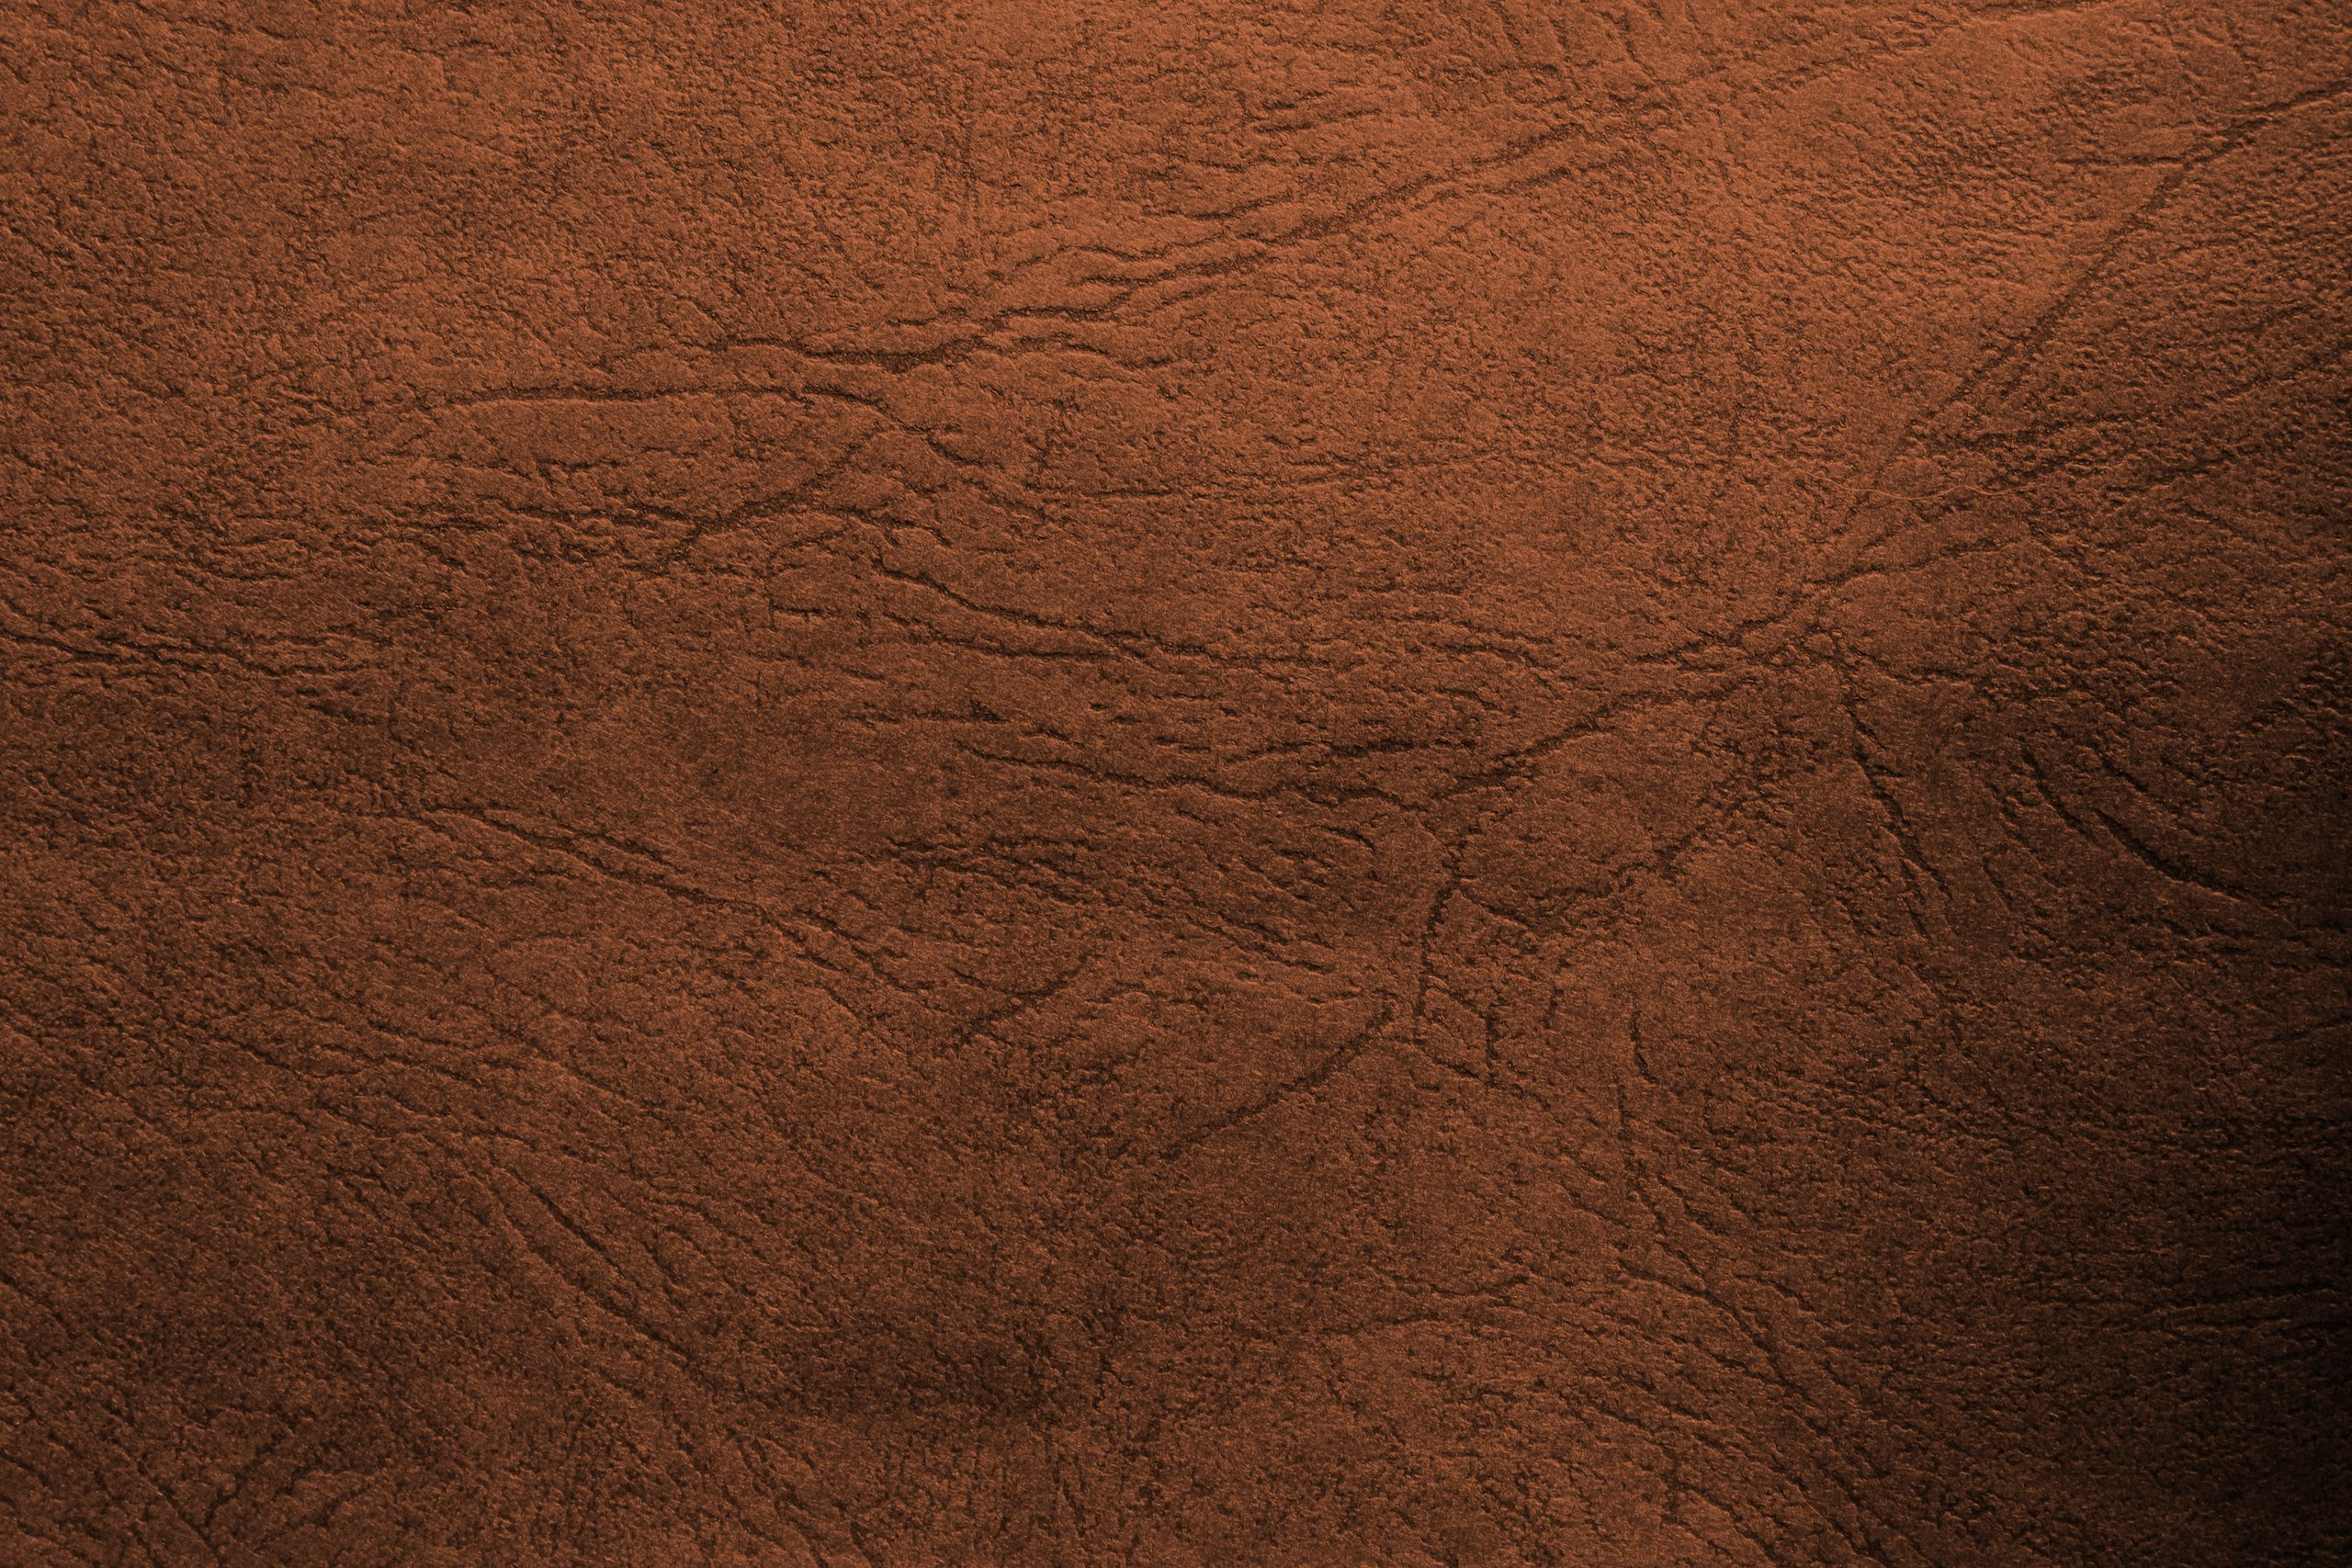 Brown leather wallpaper brown photo 28317148 fanpop for Brown wallpaper for walls